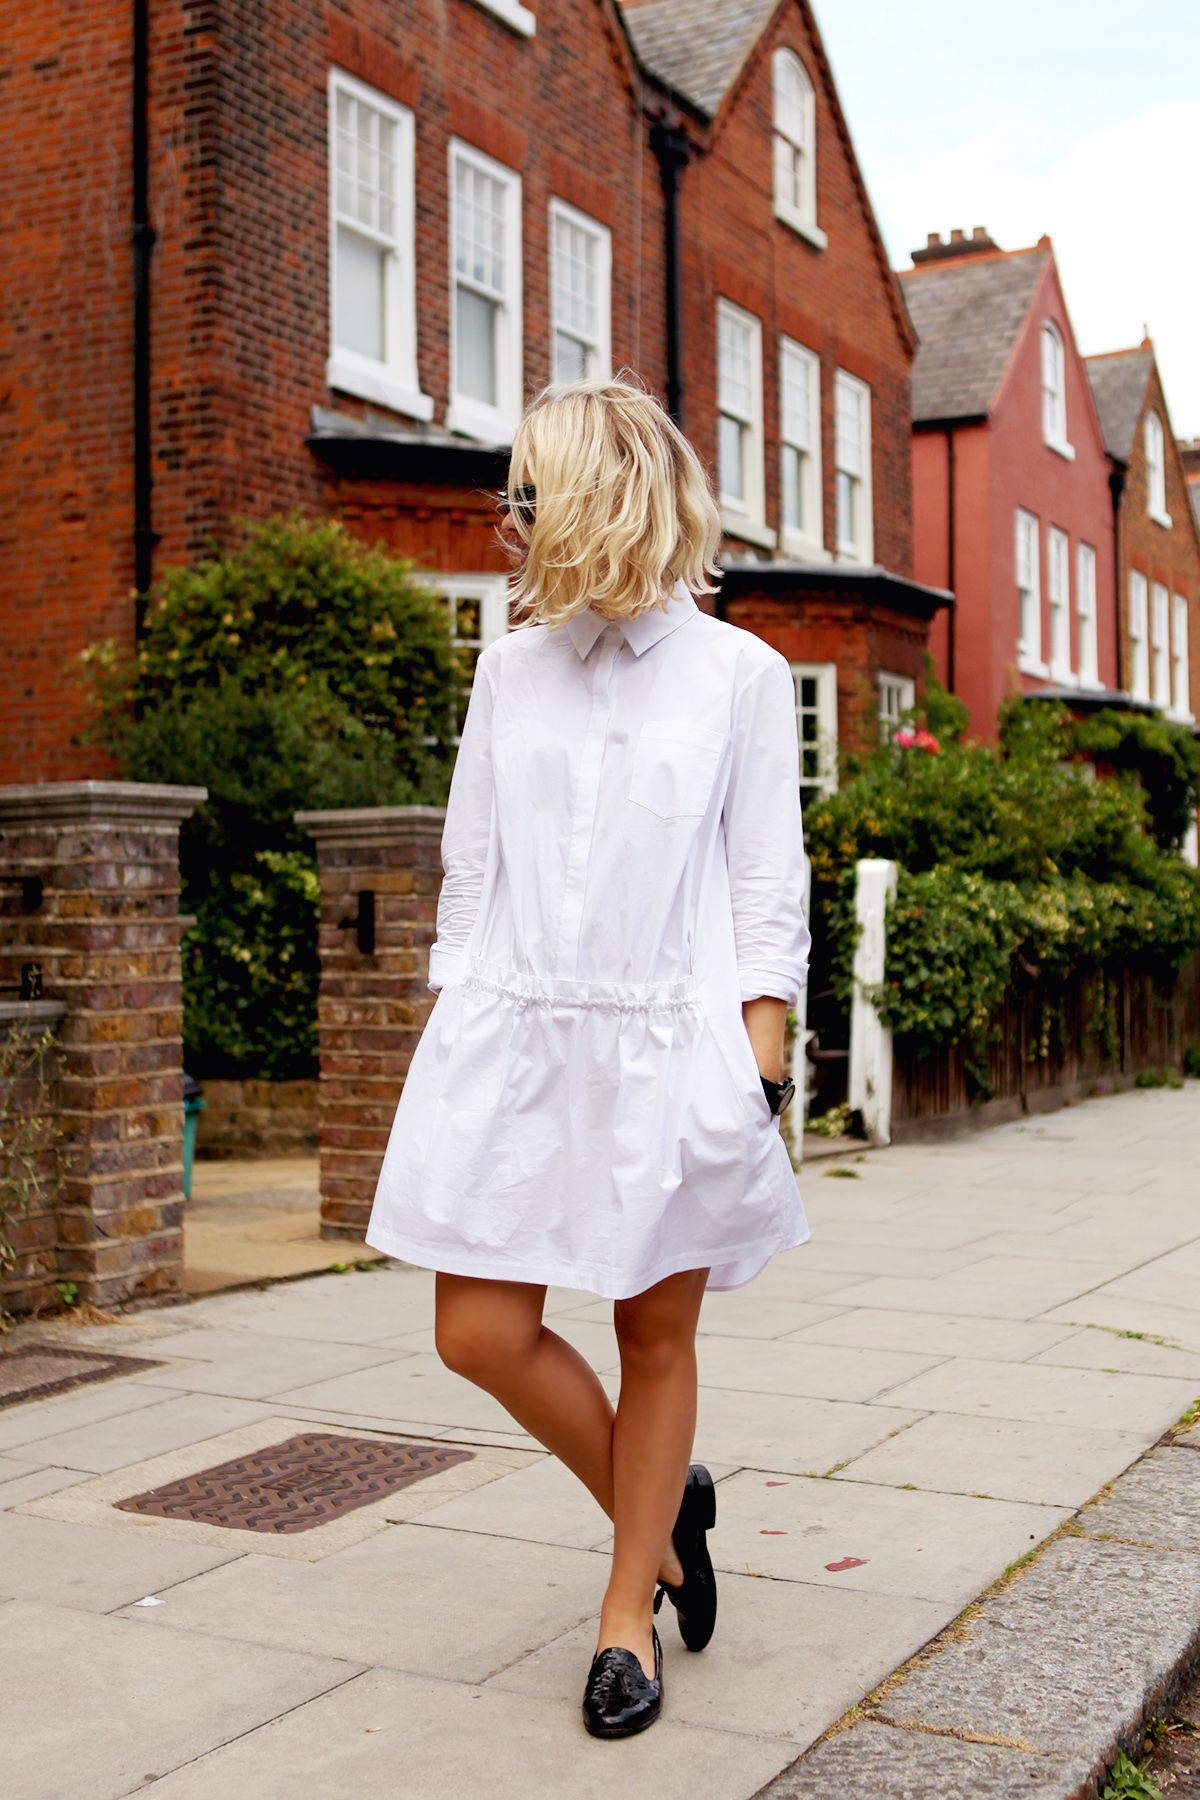 The white shirt is a big hit, and especially a shirt-dress here for summer with a pair of loafers.  This shirt: http://asos.to/V513Rx   with these loafers: http://asos.to/V51eMy   would be the perfect summer outfit!